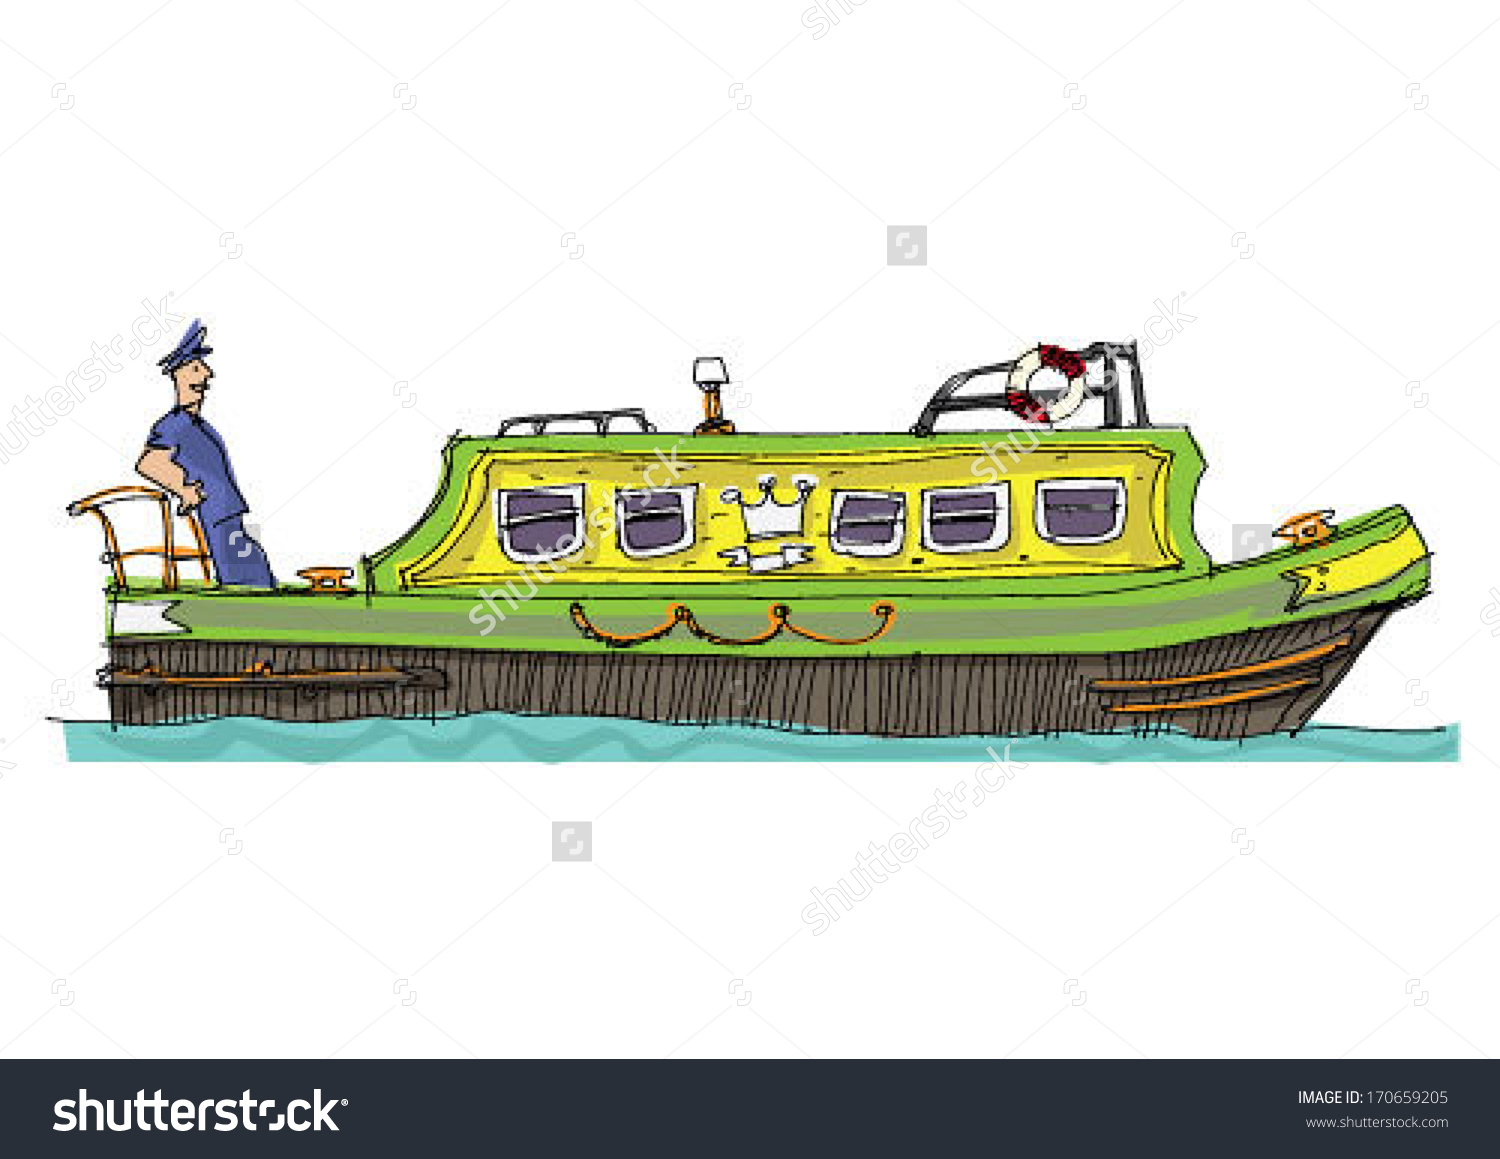 Leisure Barge Cartoon Stock Vector 170659205.